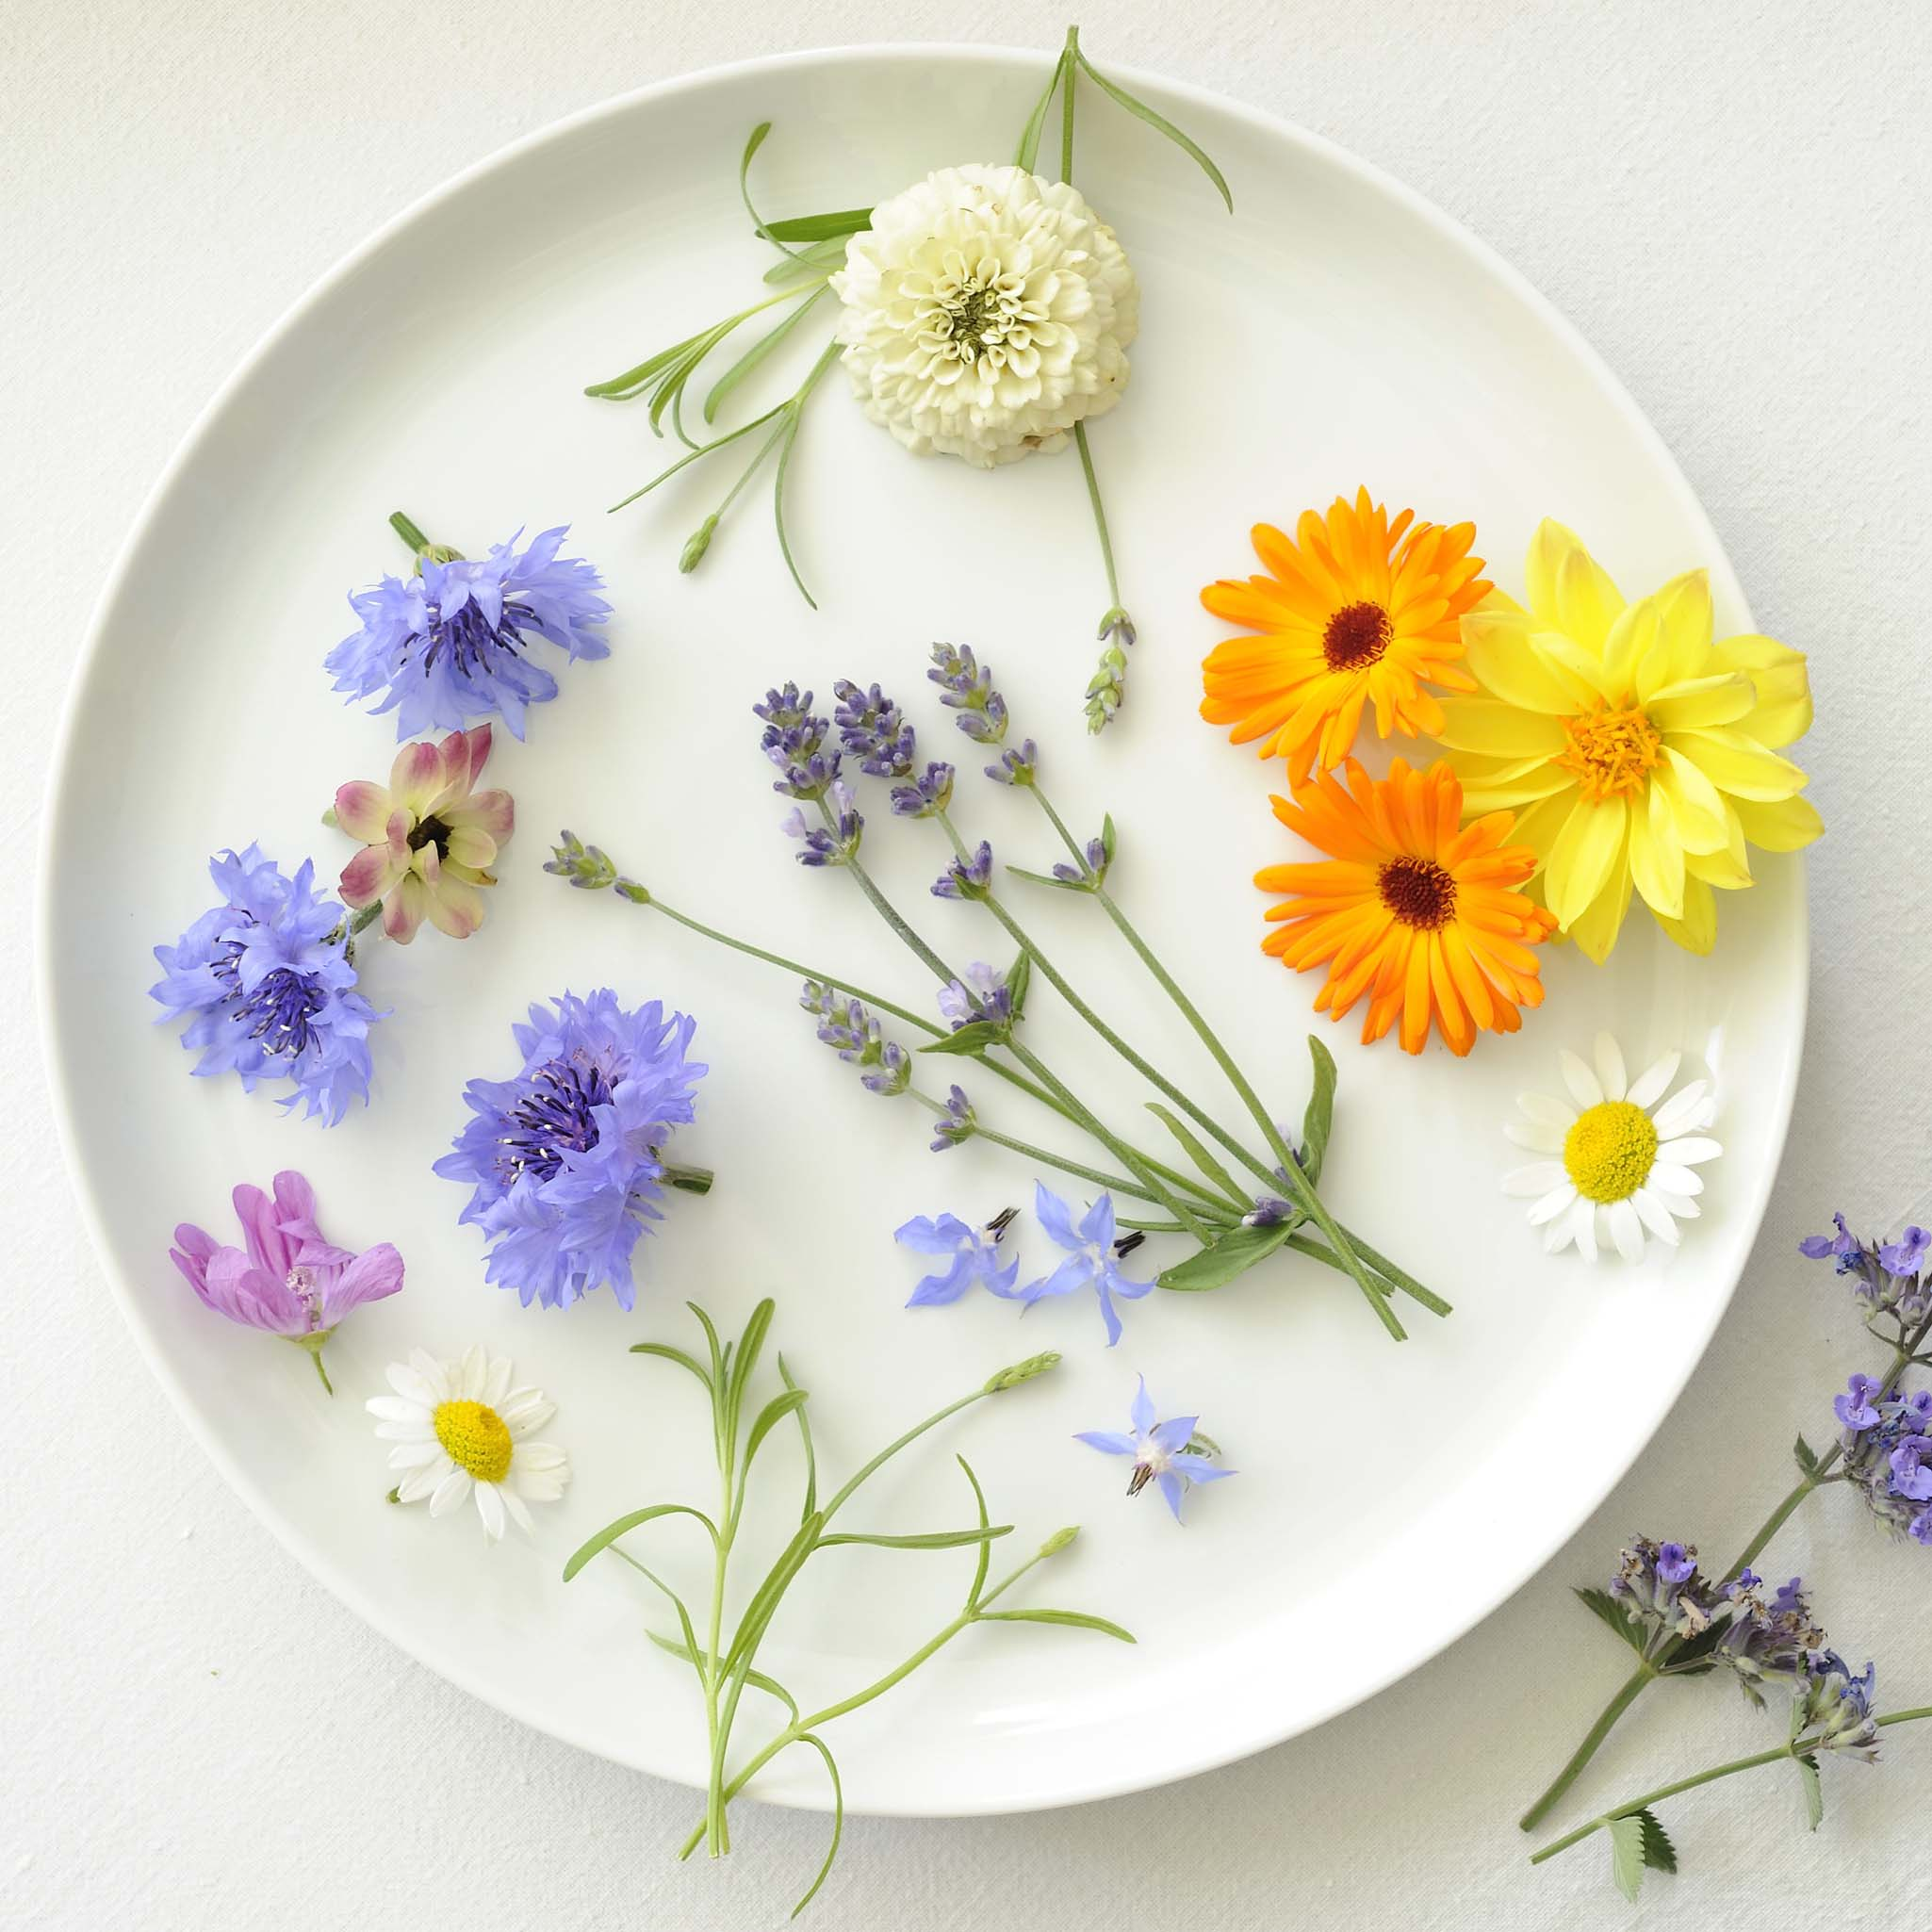 colourful eatable flowers arranged on white plate